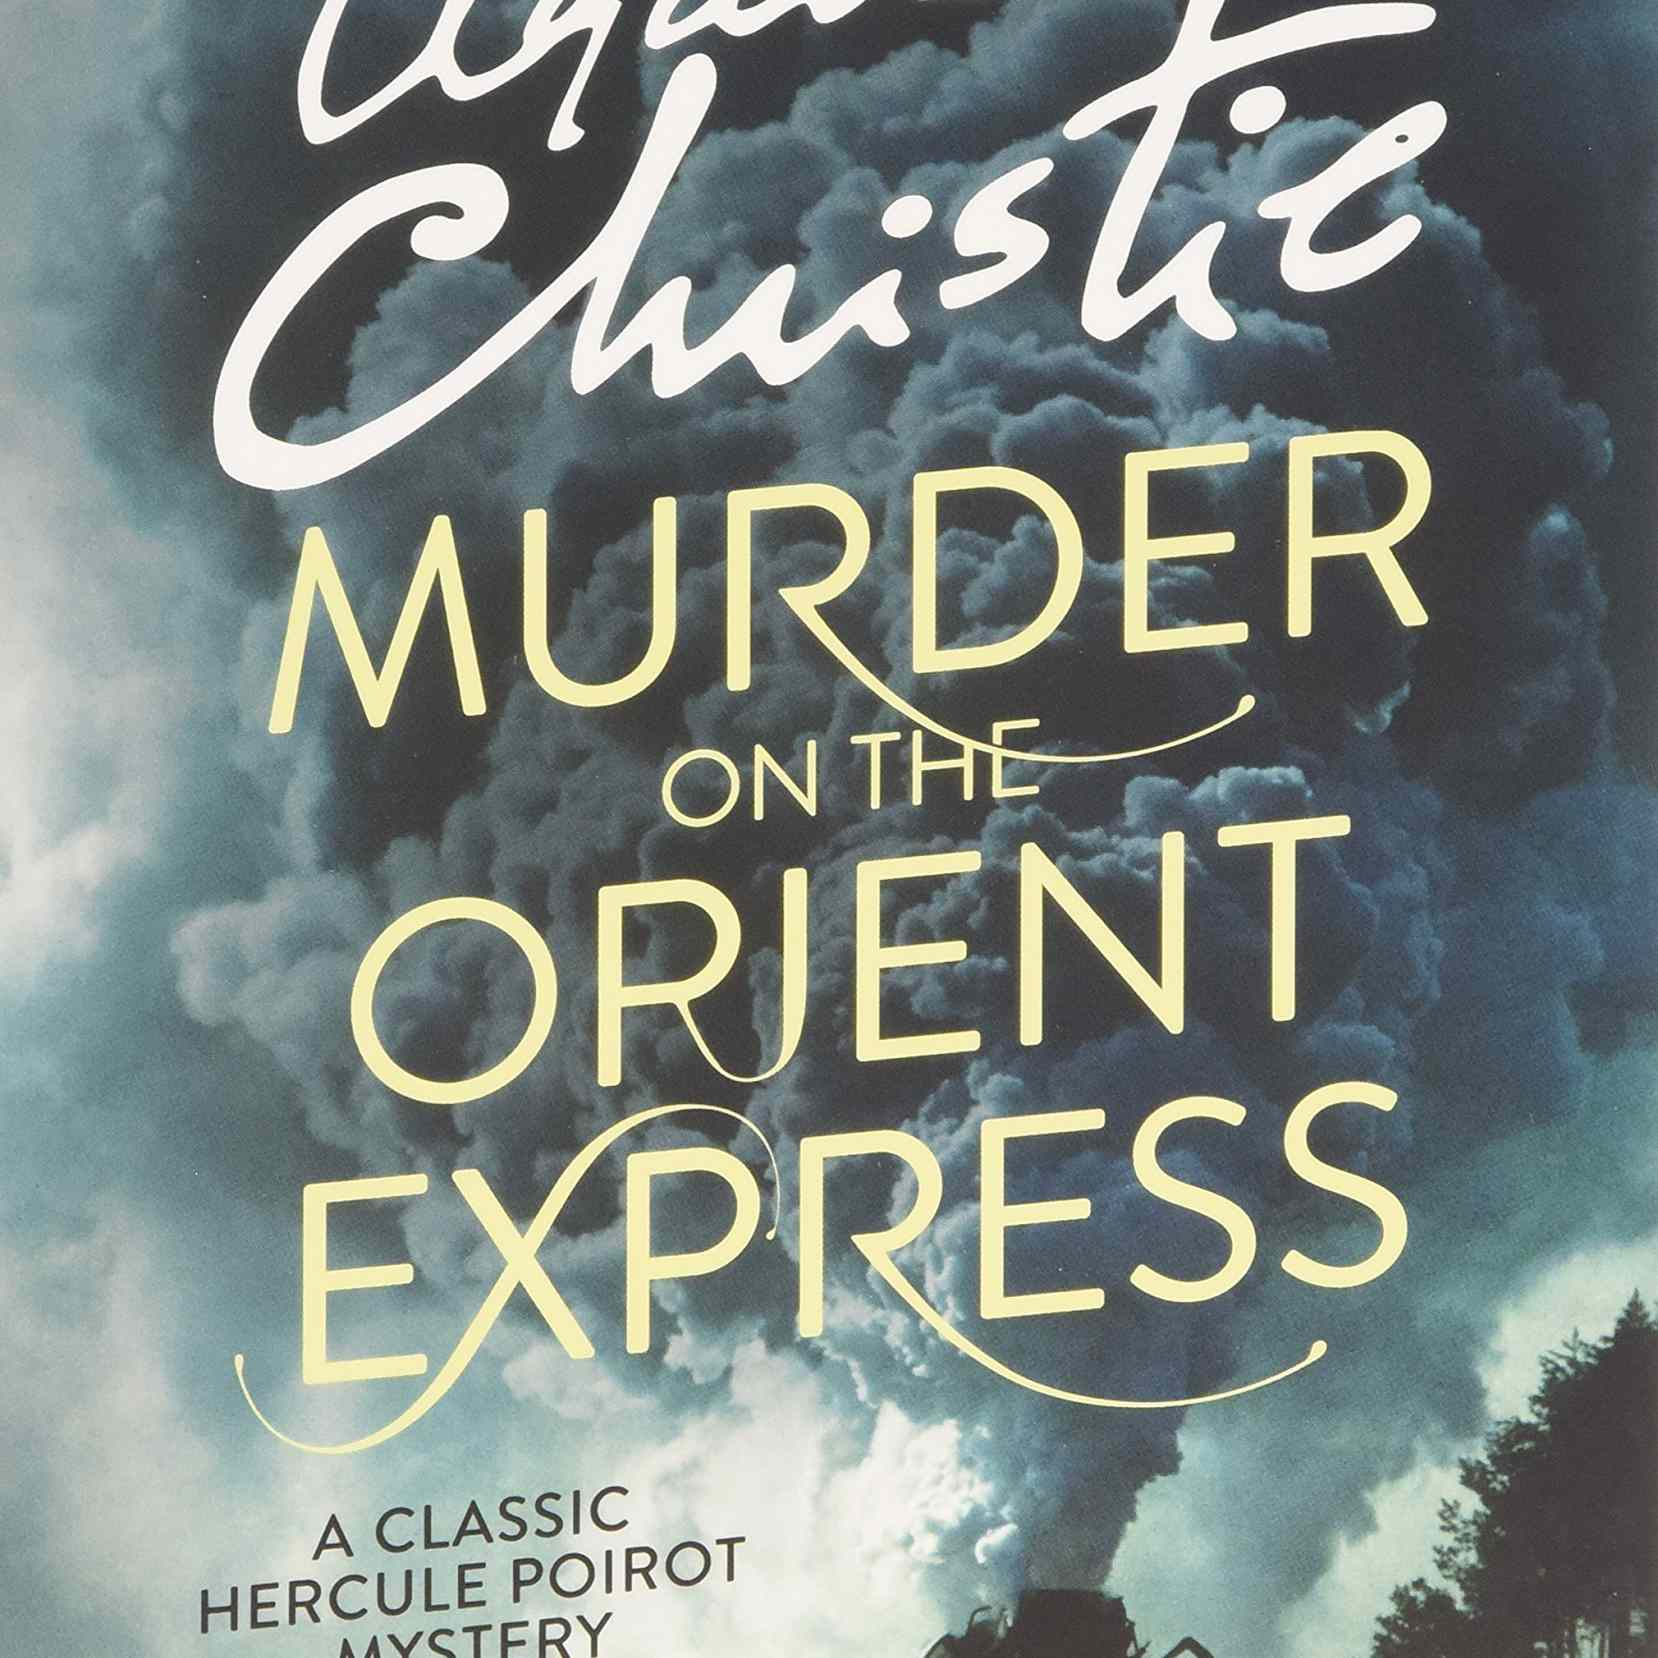 Murder on the Orient Express, by Agatha Christie